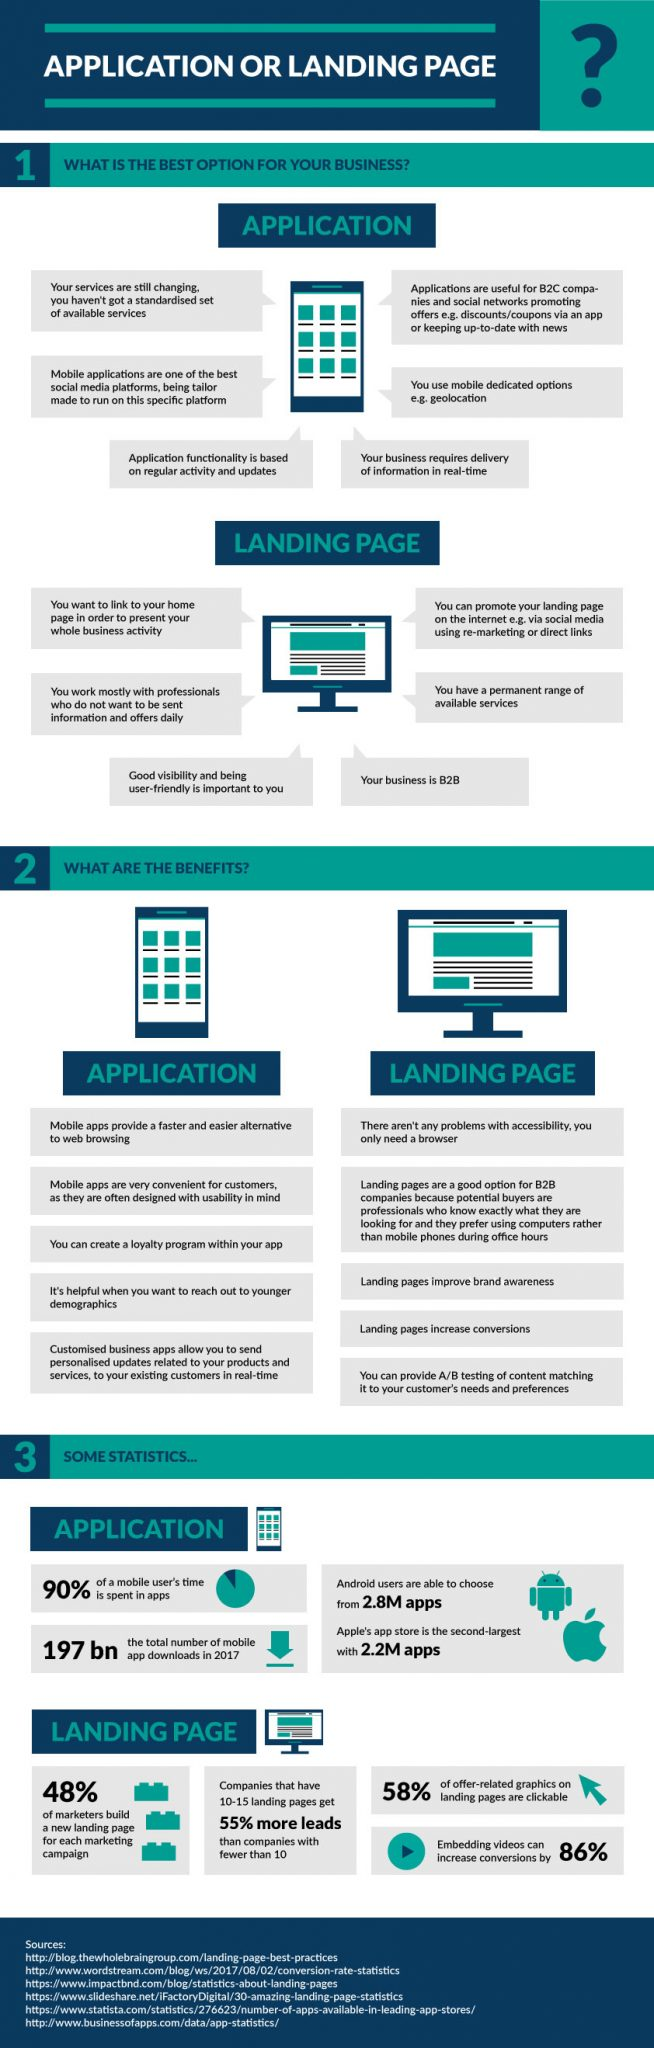 Landing Page vs Application - Infographic 3